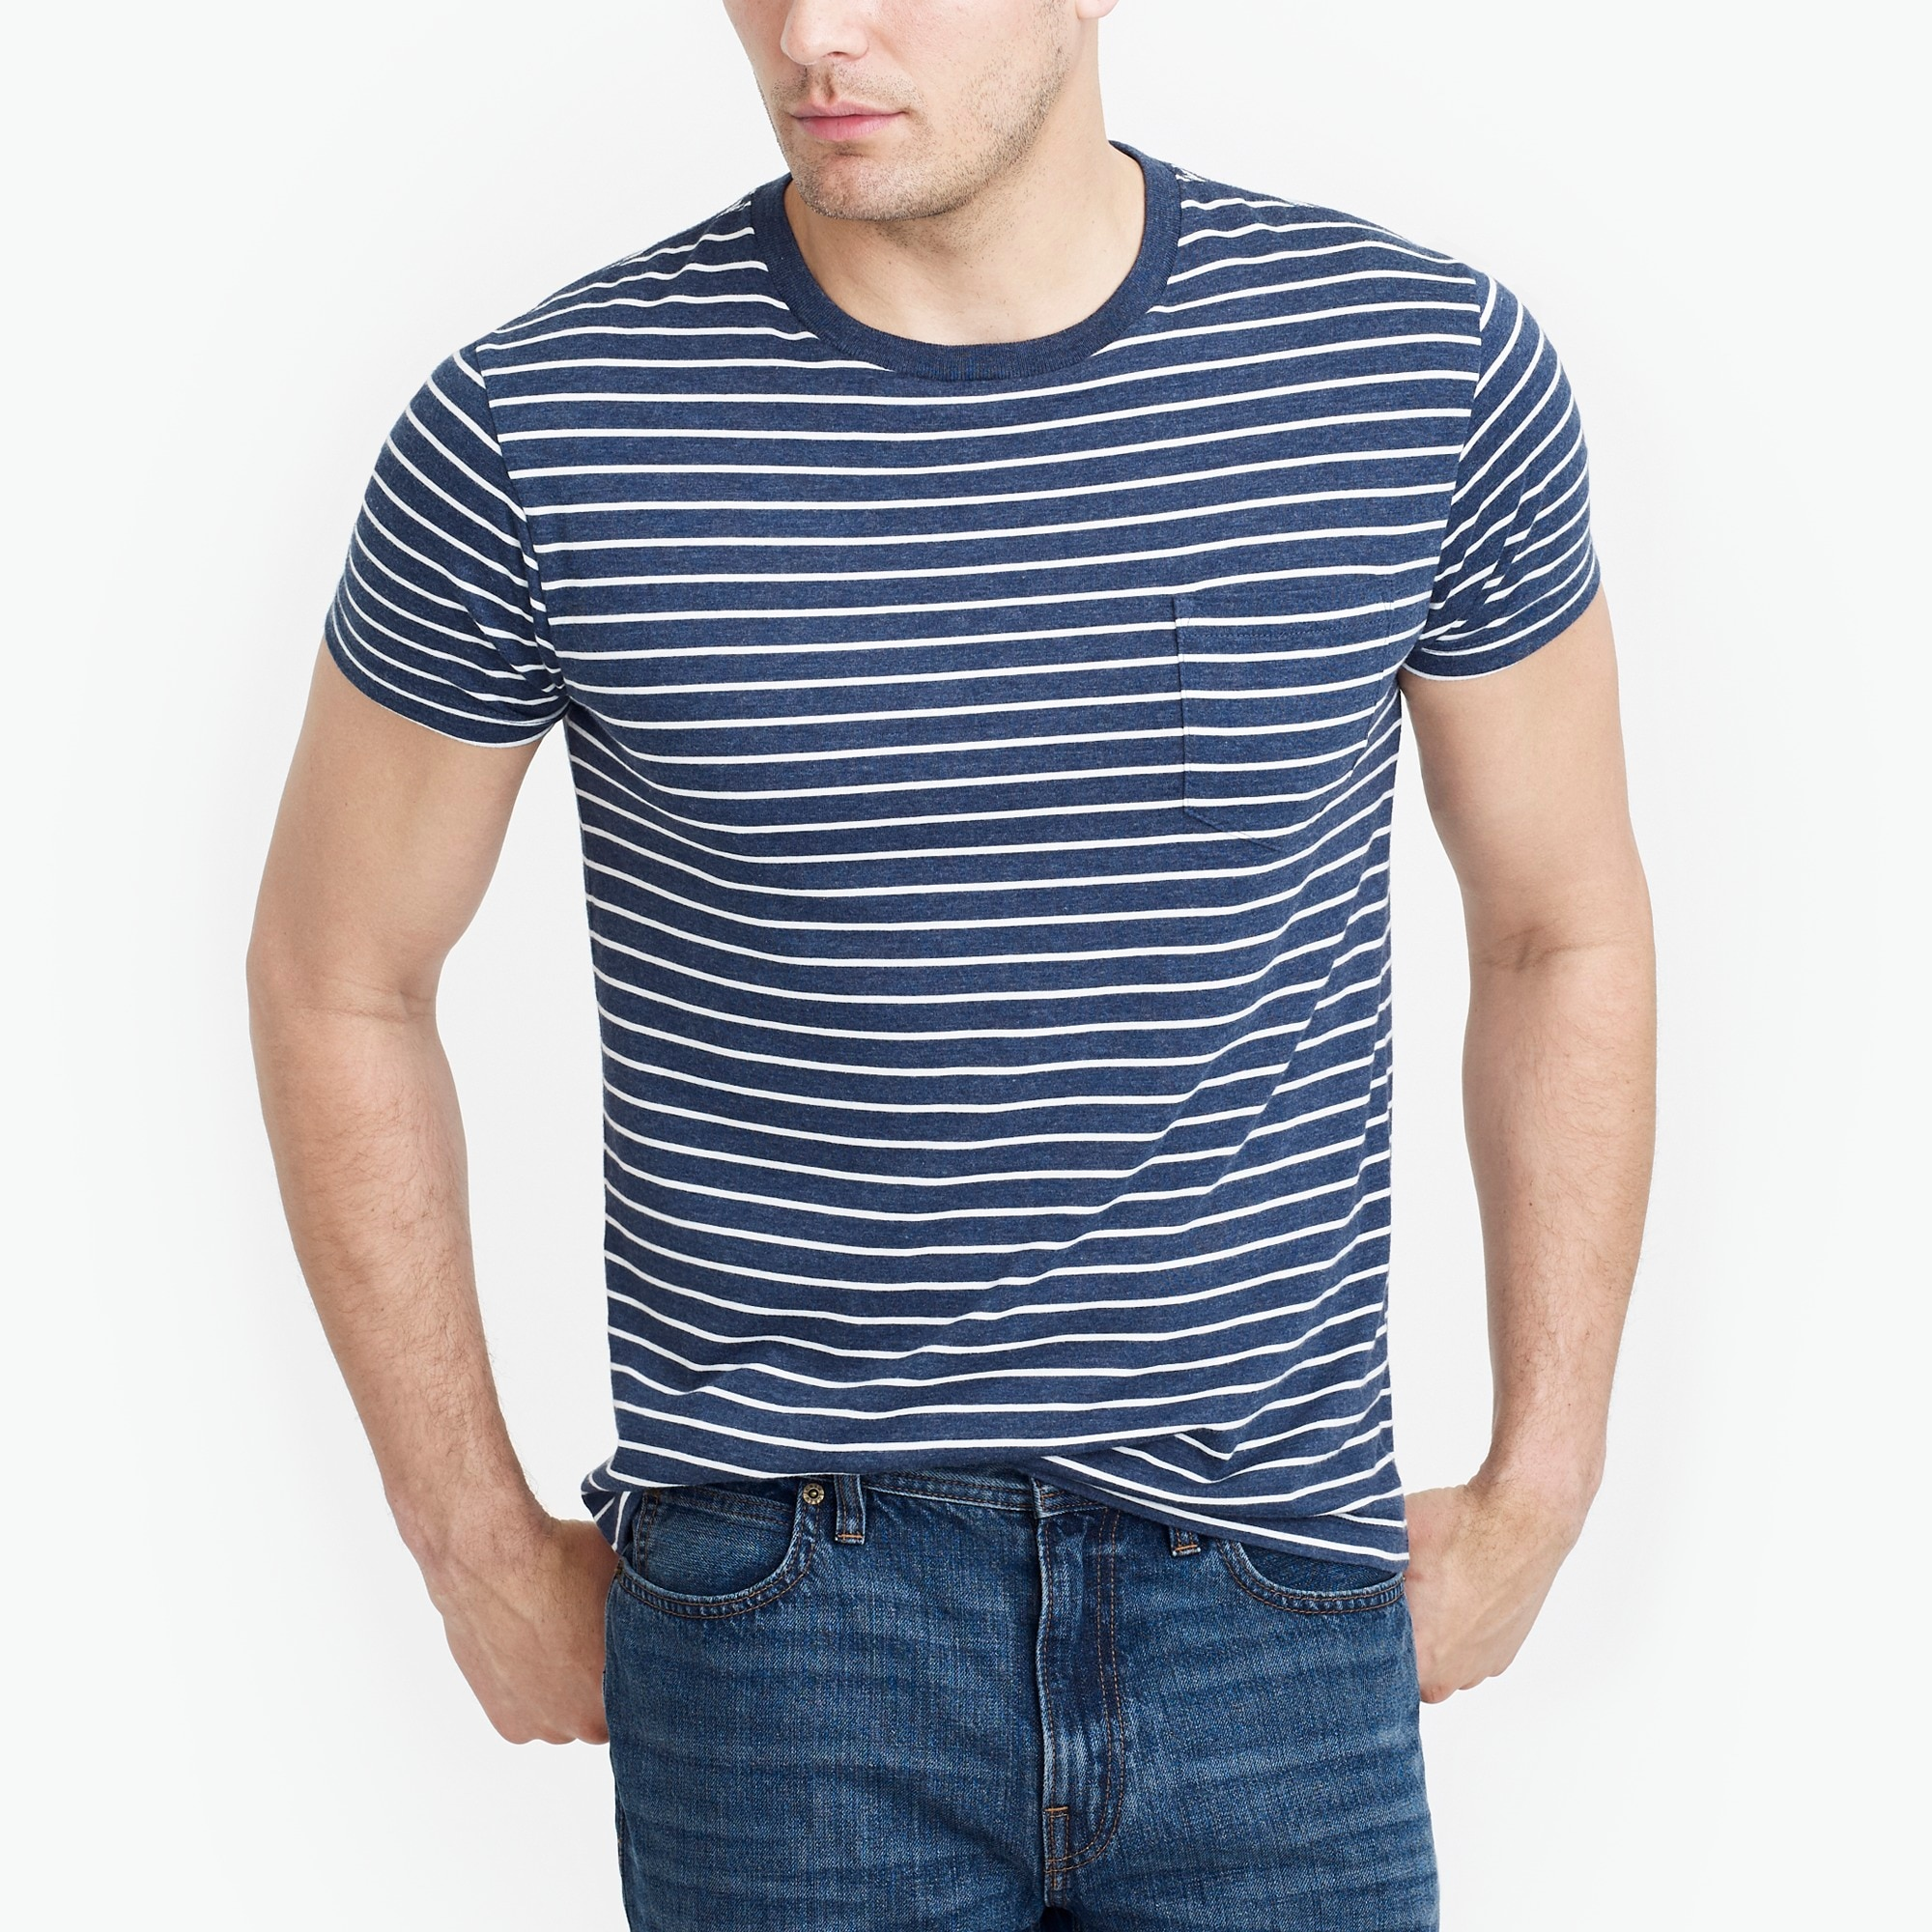 Image 1 for J.Crew Mercantile tall slim Broken-in striped pocket T-shirt